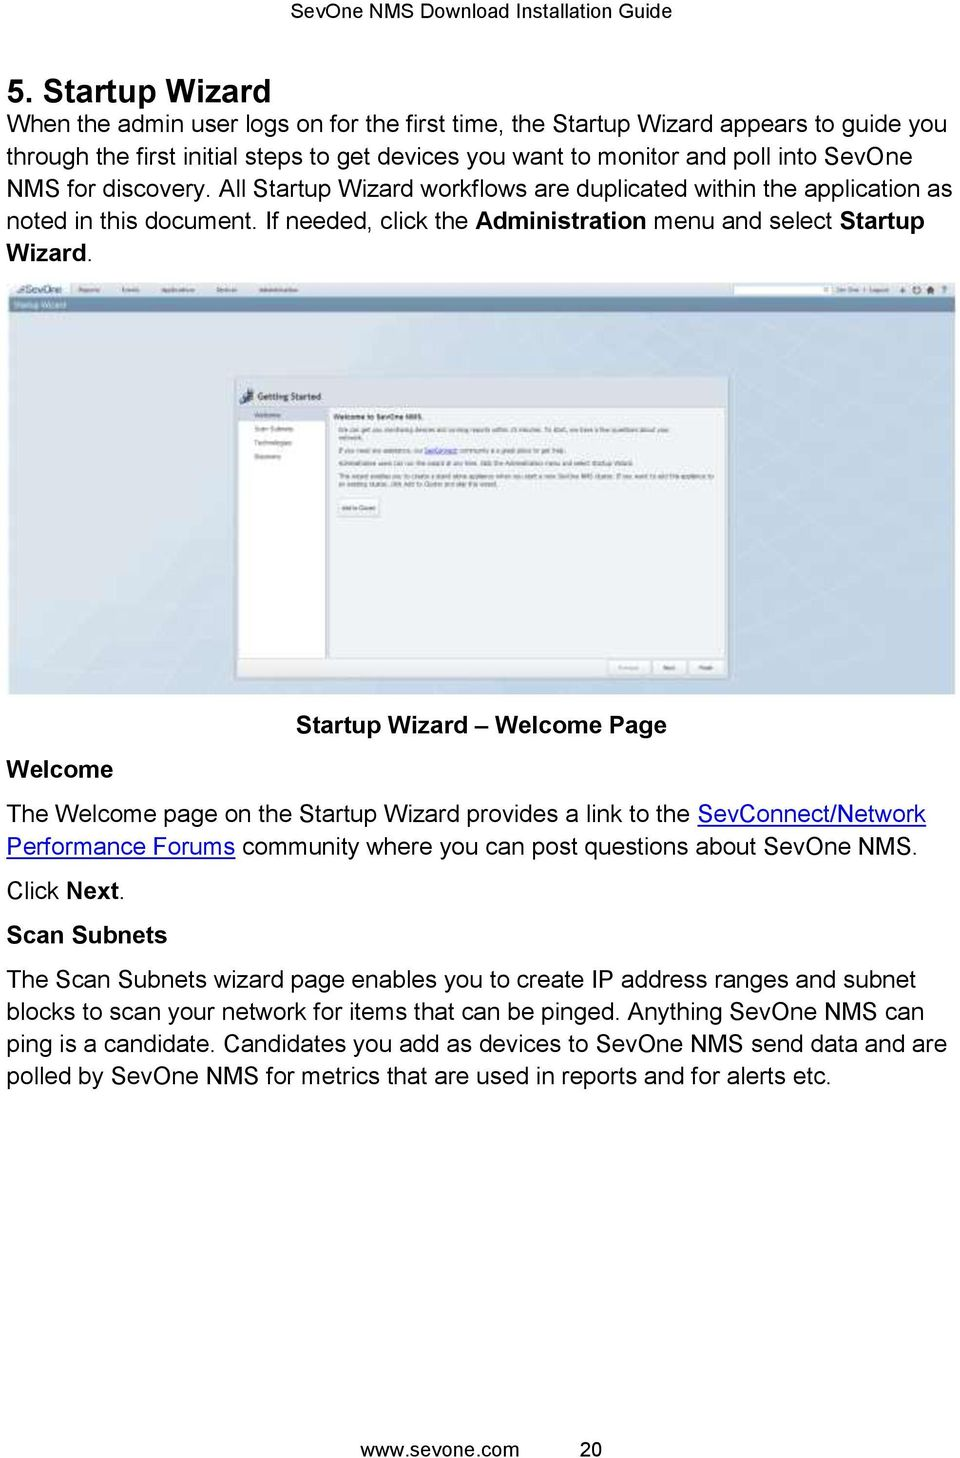 Welcome Startup Wizard Welcome Page The Welcome page on the Startup Wizard provides a link to the SevConnect/Network Performance Forums community where you can post questions about SevOne NMS.